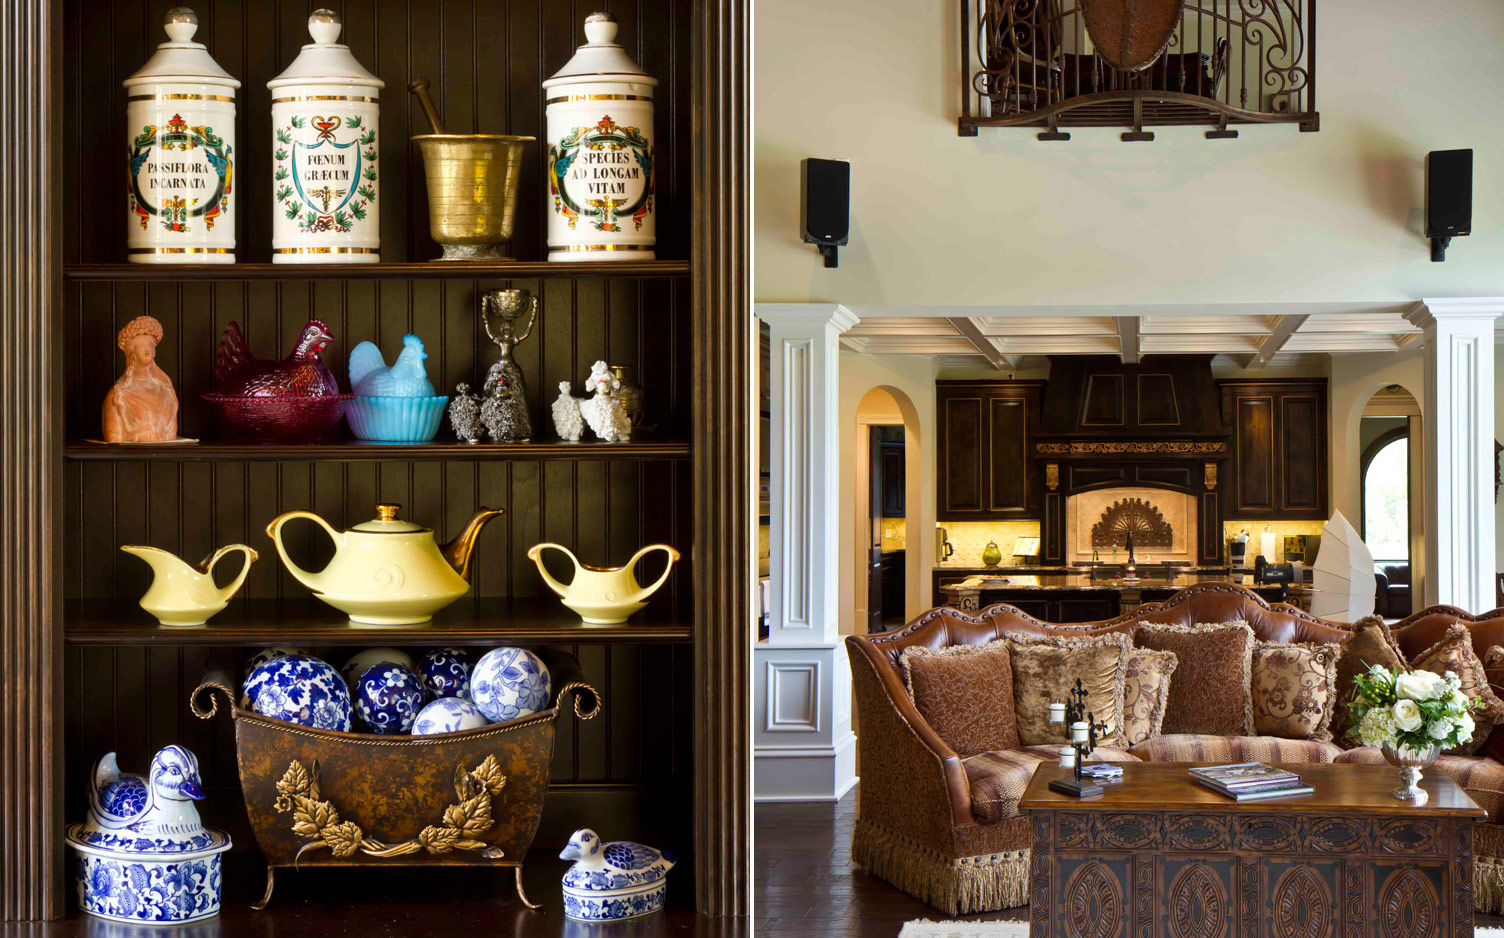 A New Home Rich in Antiques - southernladymagazine.com